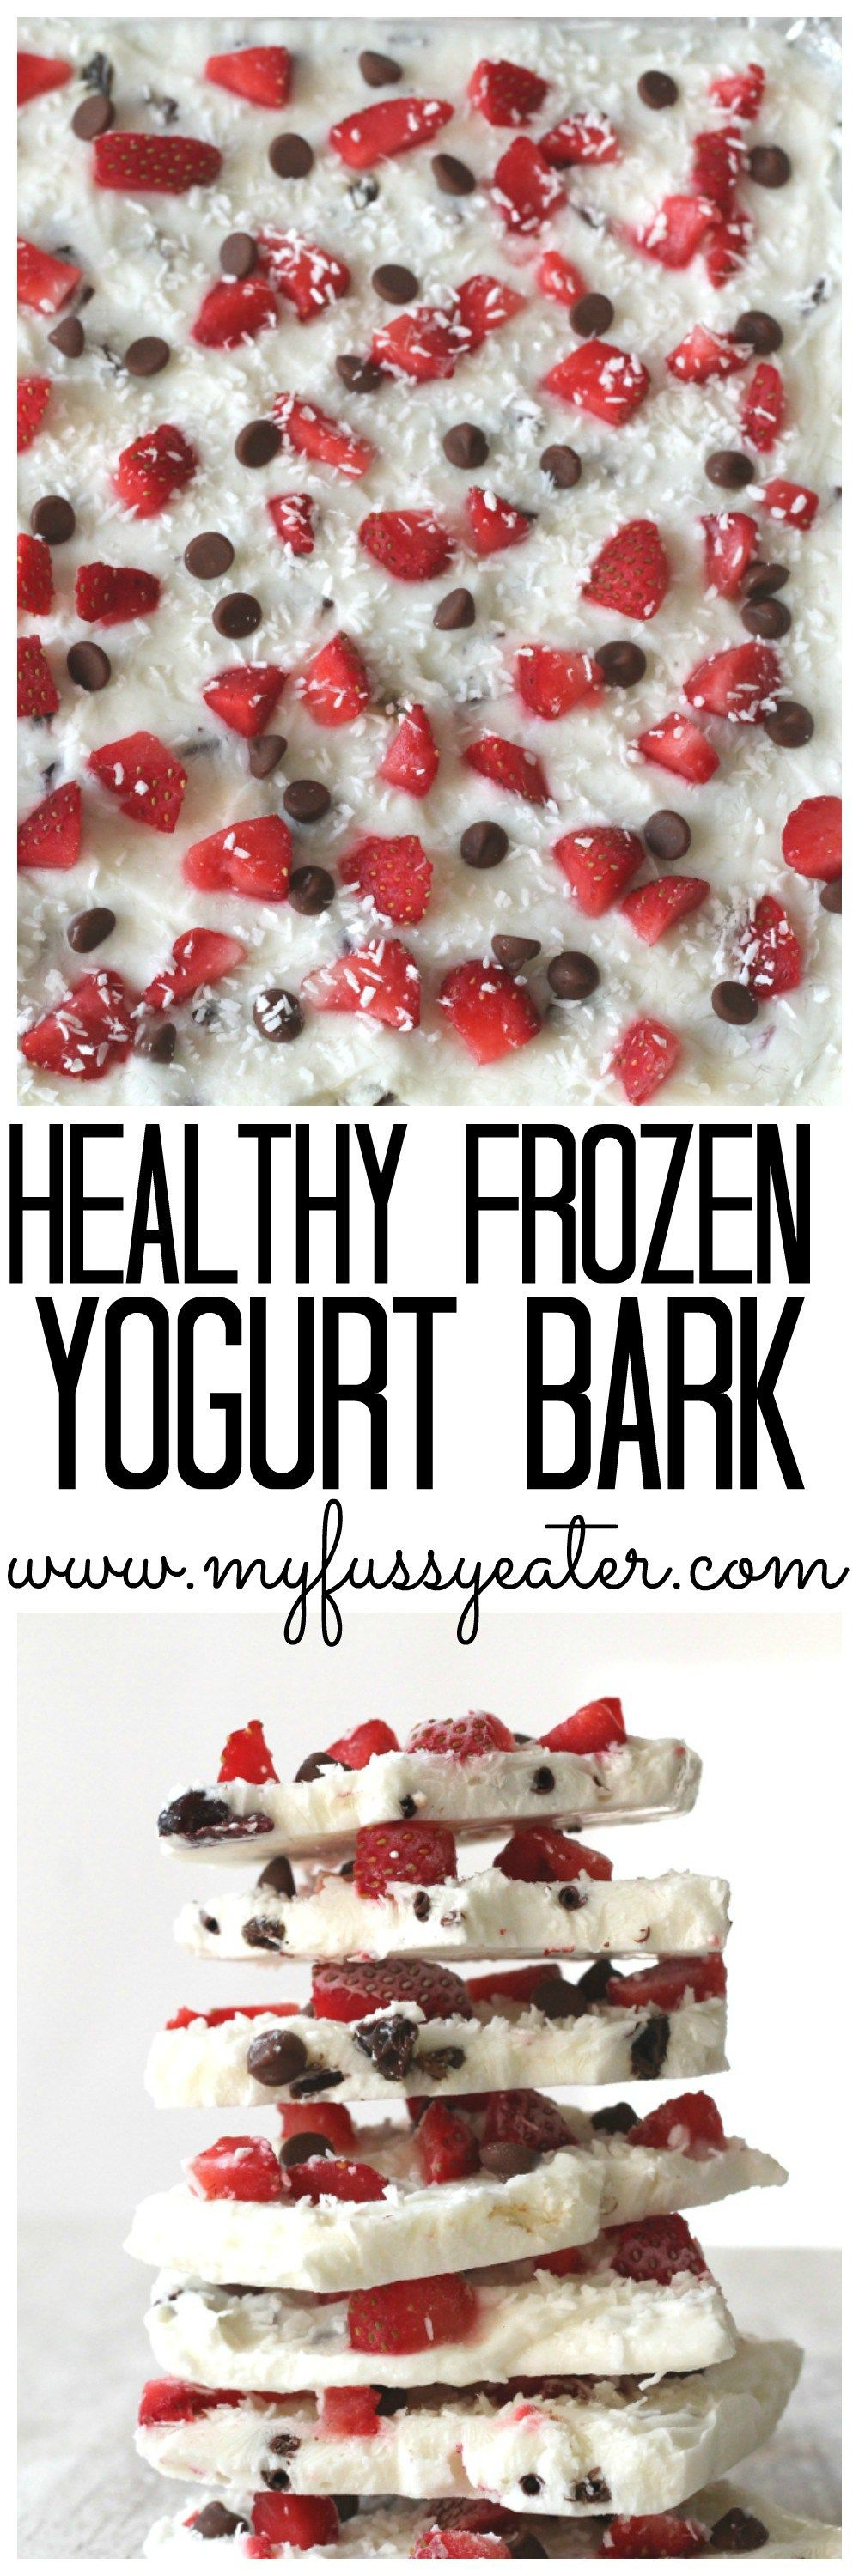 Snack time just got exciting with this low sugar Frozen